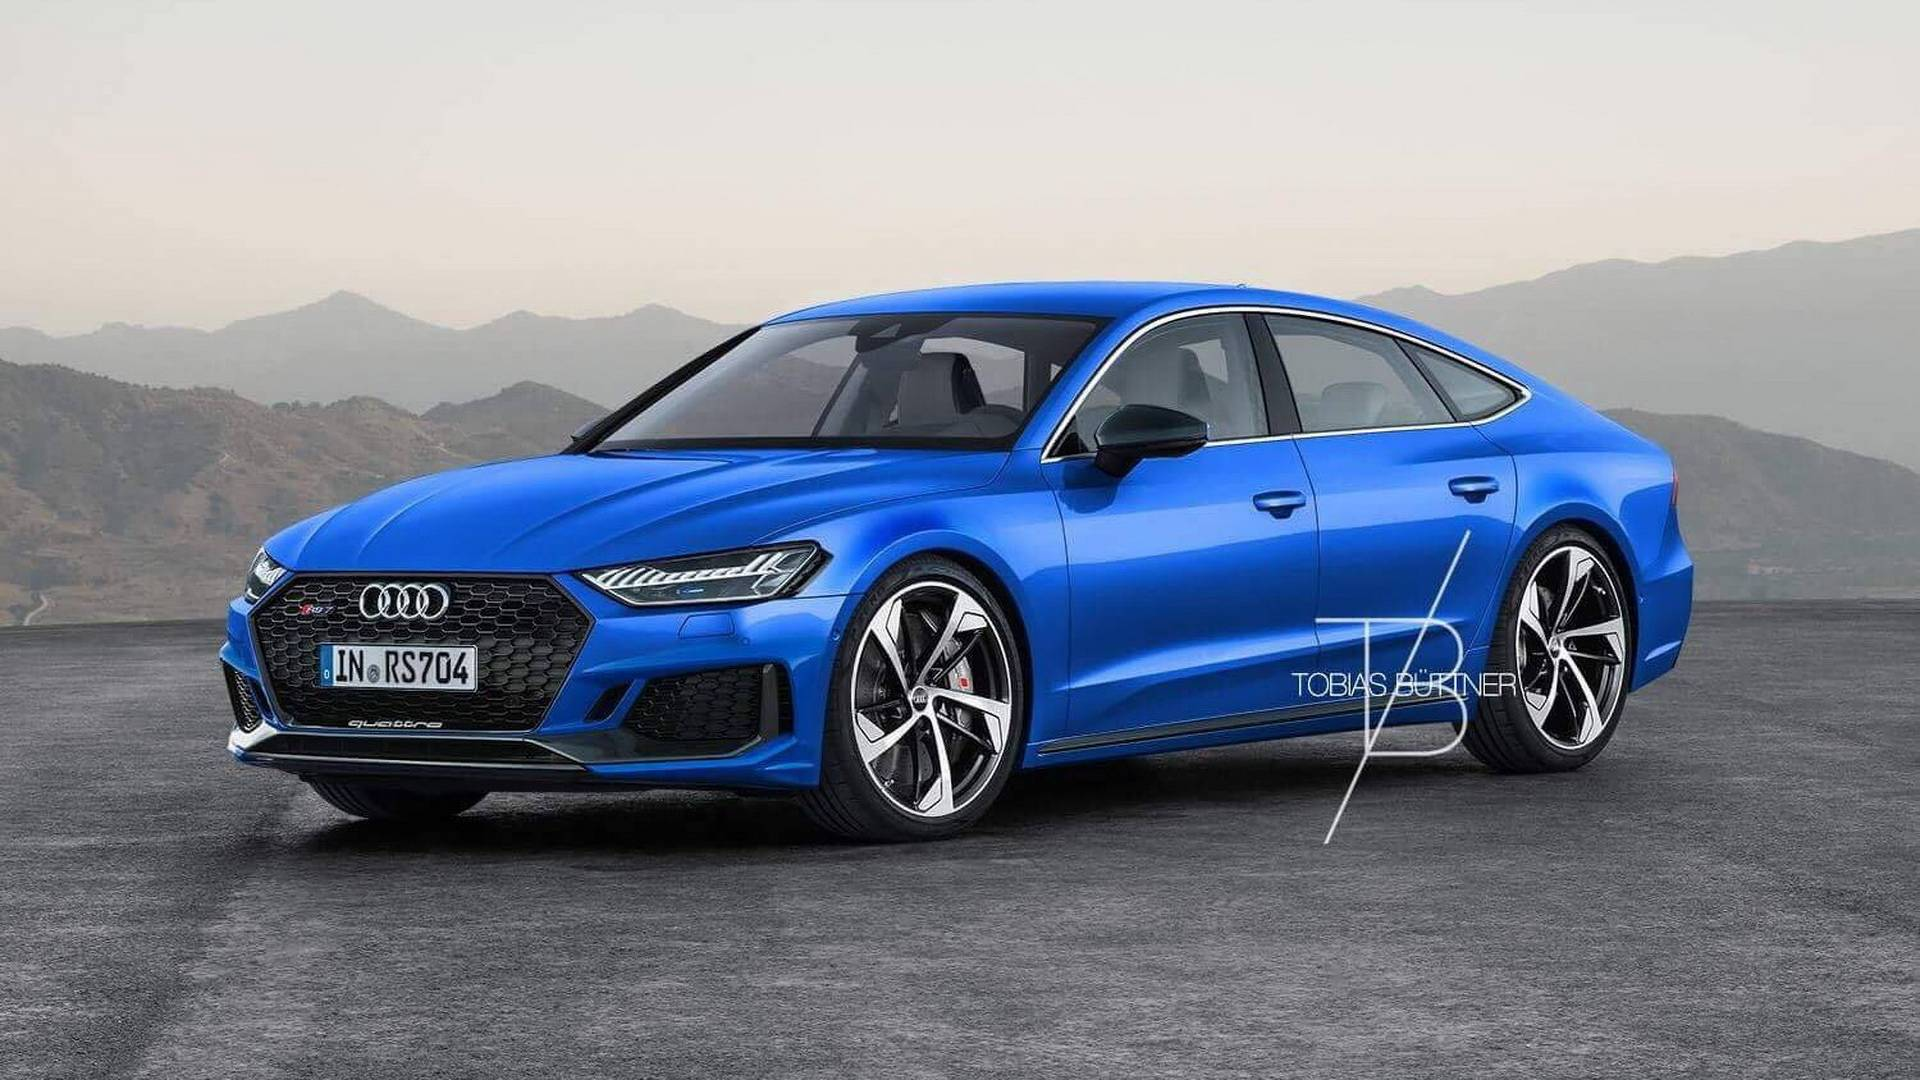 21 New 2020 Audi Rs7 Photos